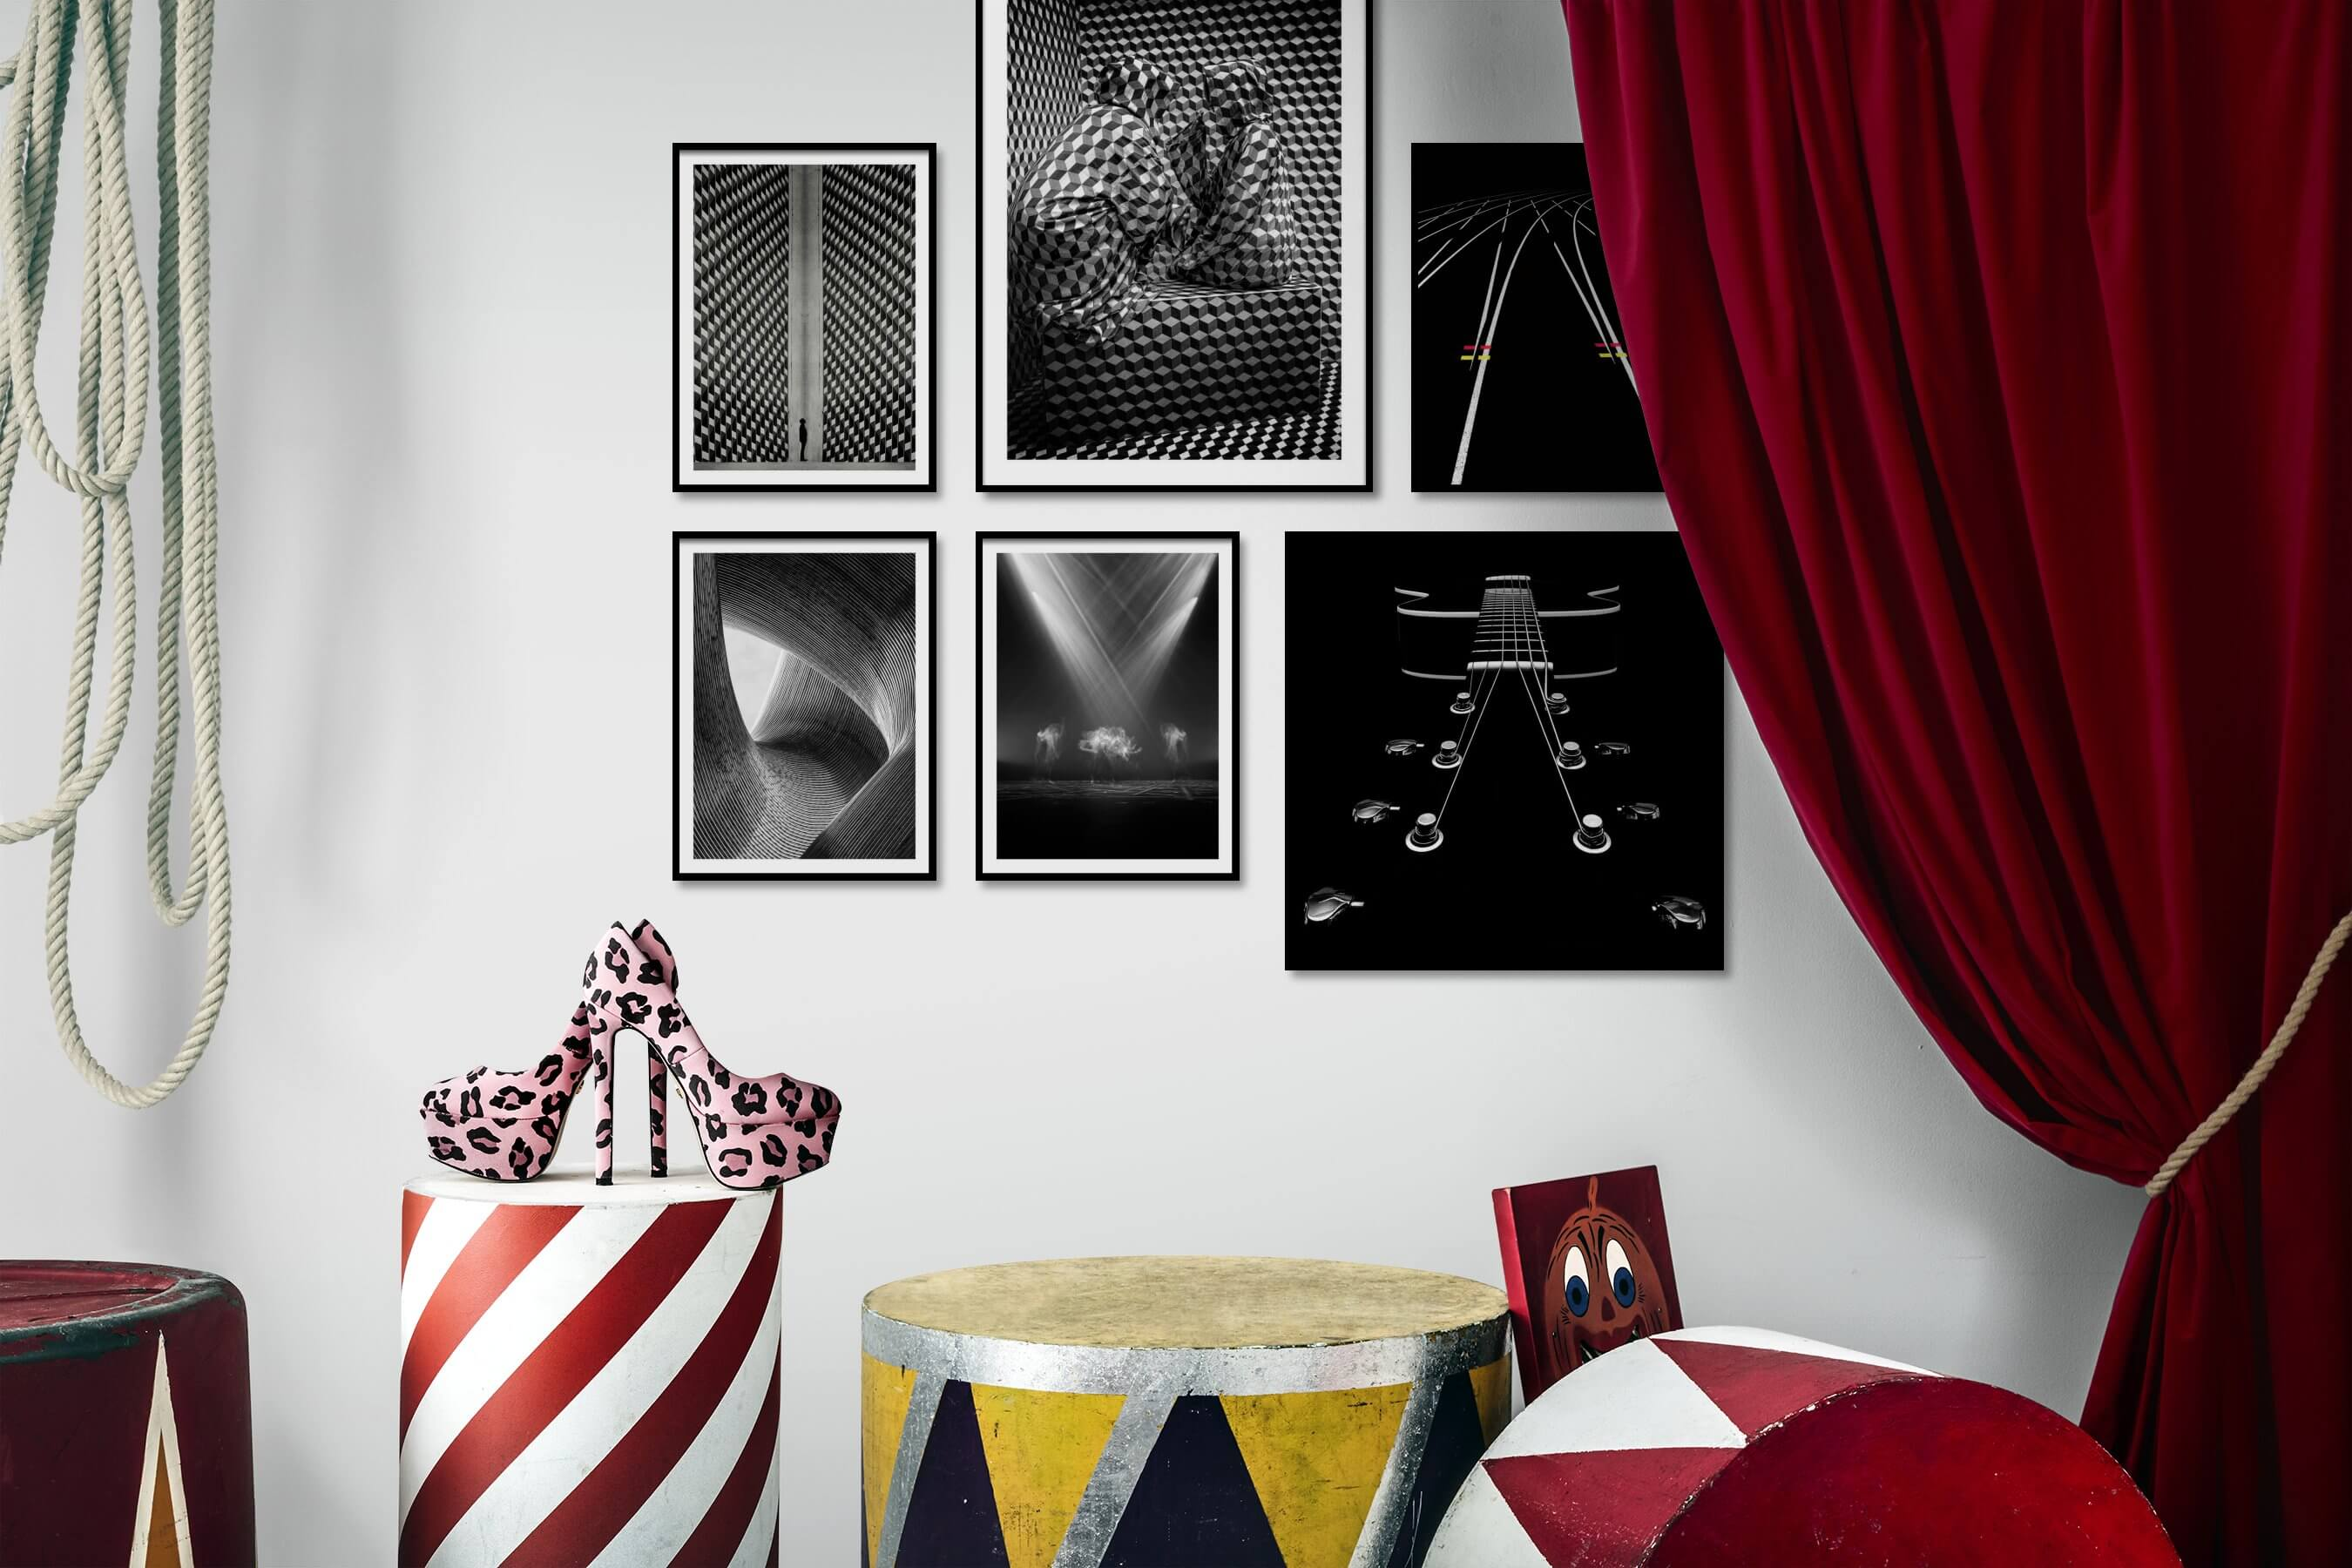 Gallery wall idea with six framed pictures arranged on a wall depicting Black & White, For the Maximalist, Artsy, For the Moderate, Dark Tones, and For the Minimalist